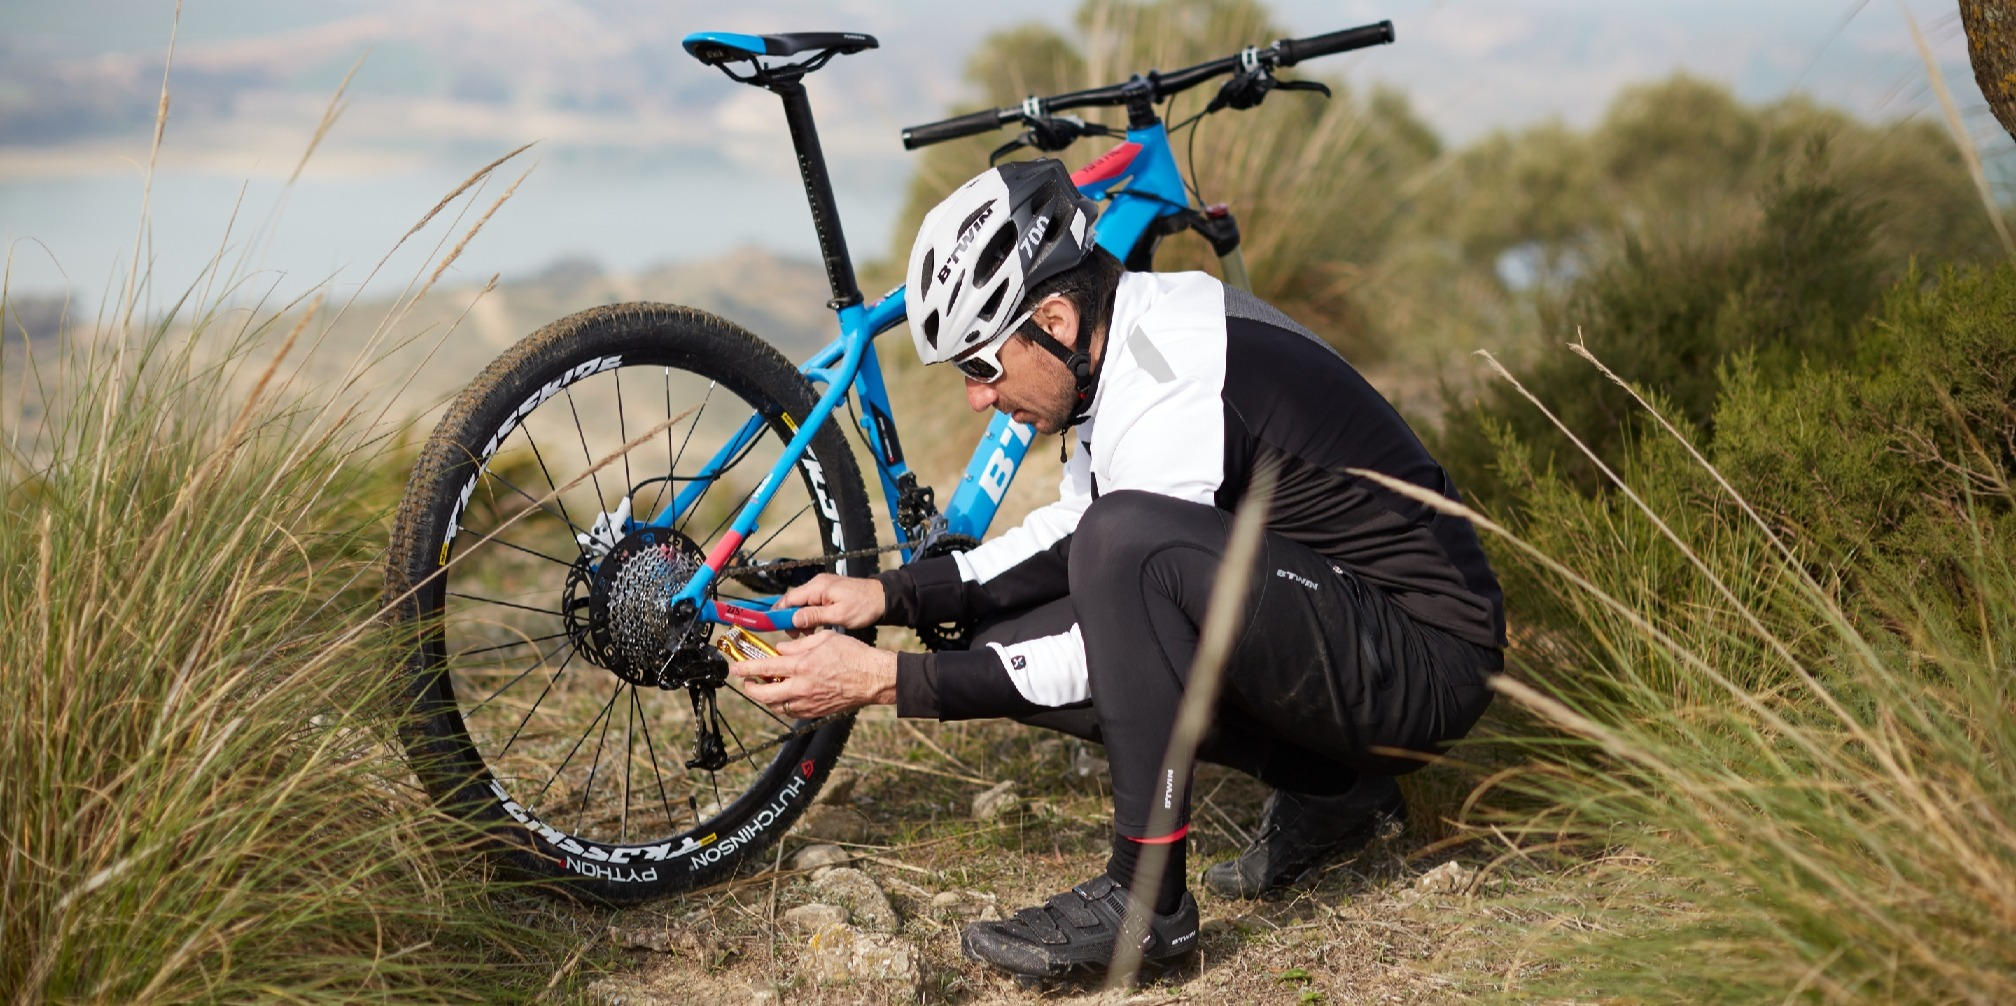 The Beginners Guide To Bike Maintenance